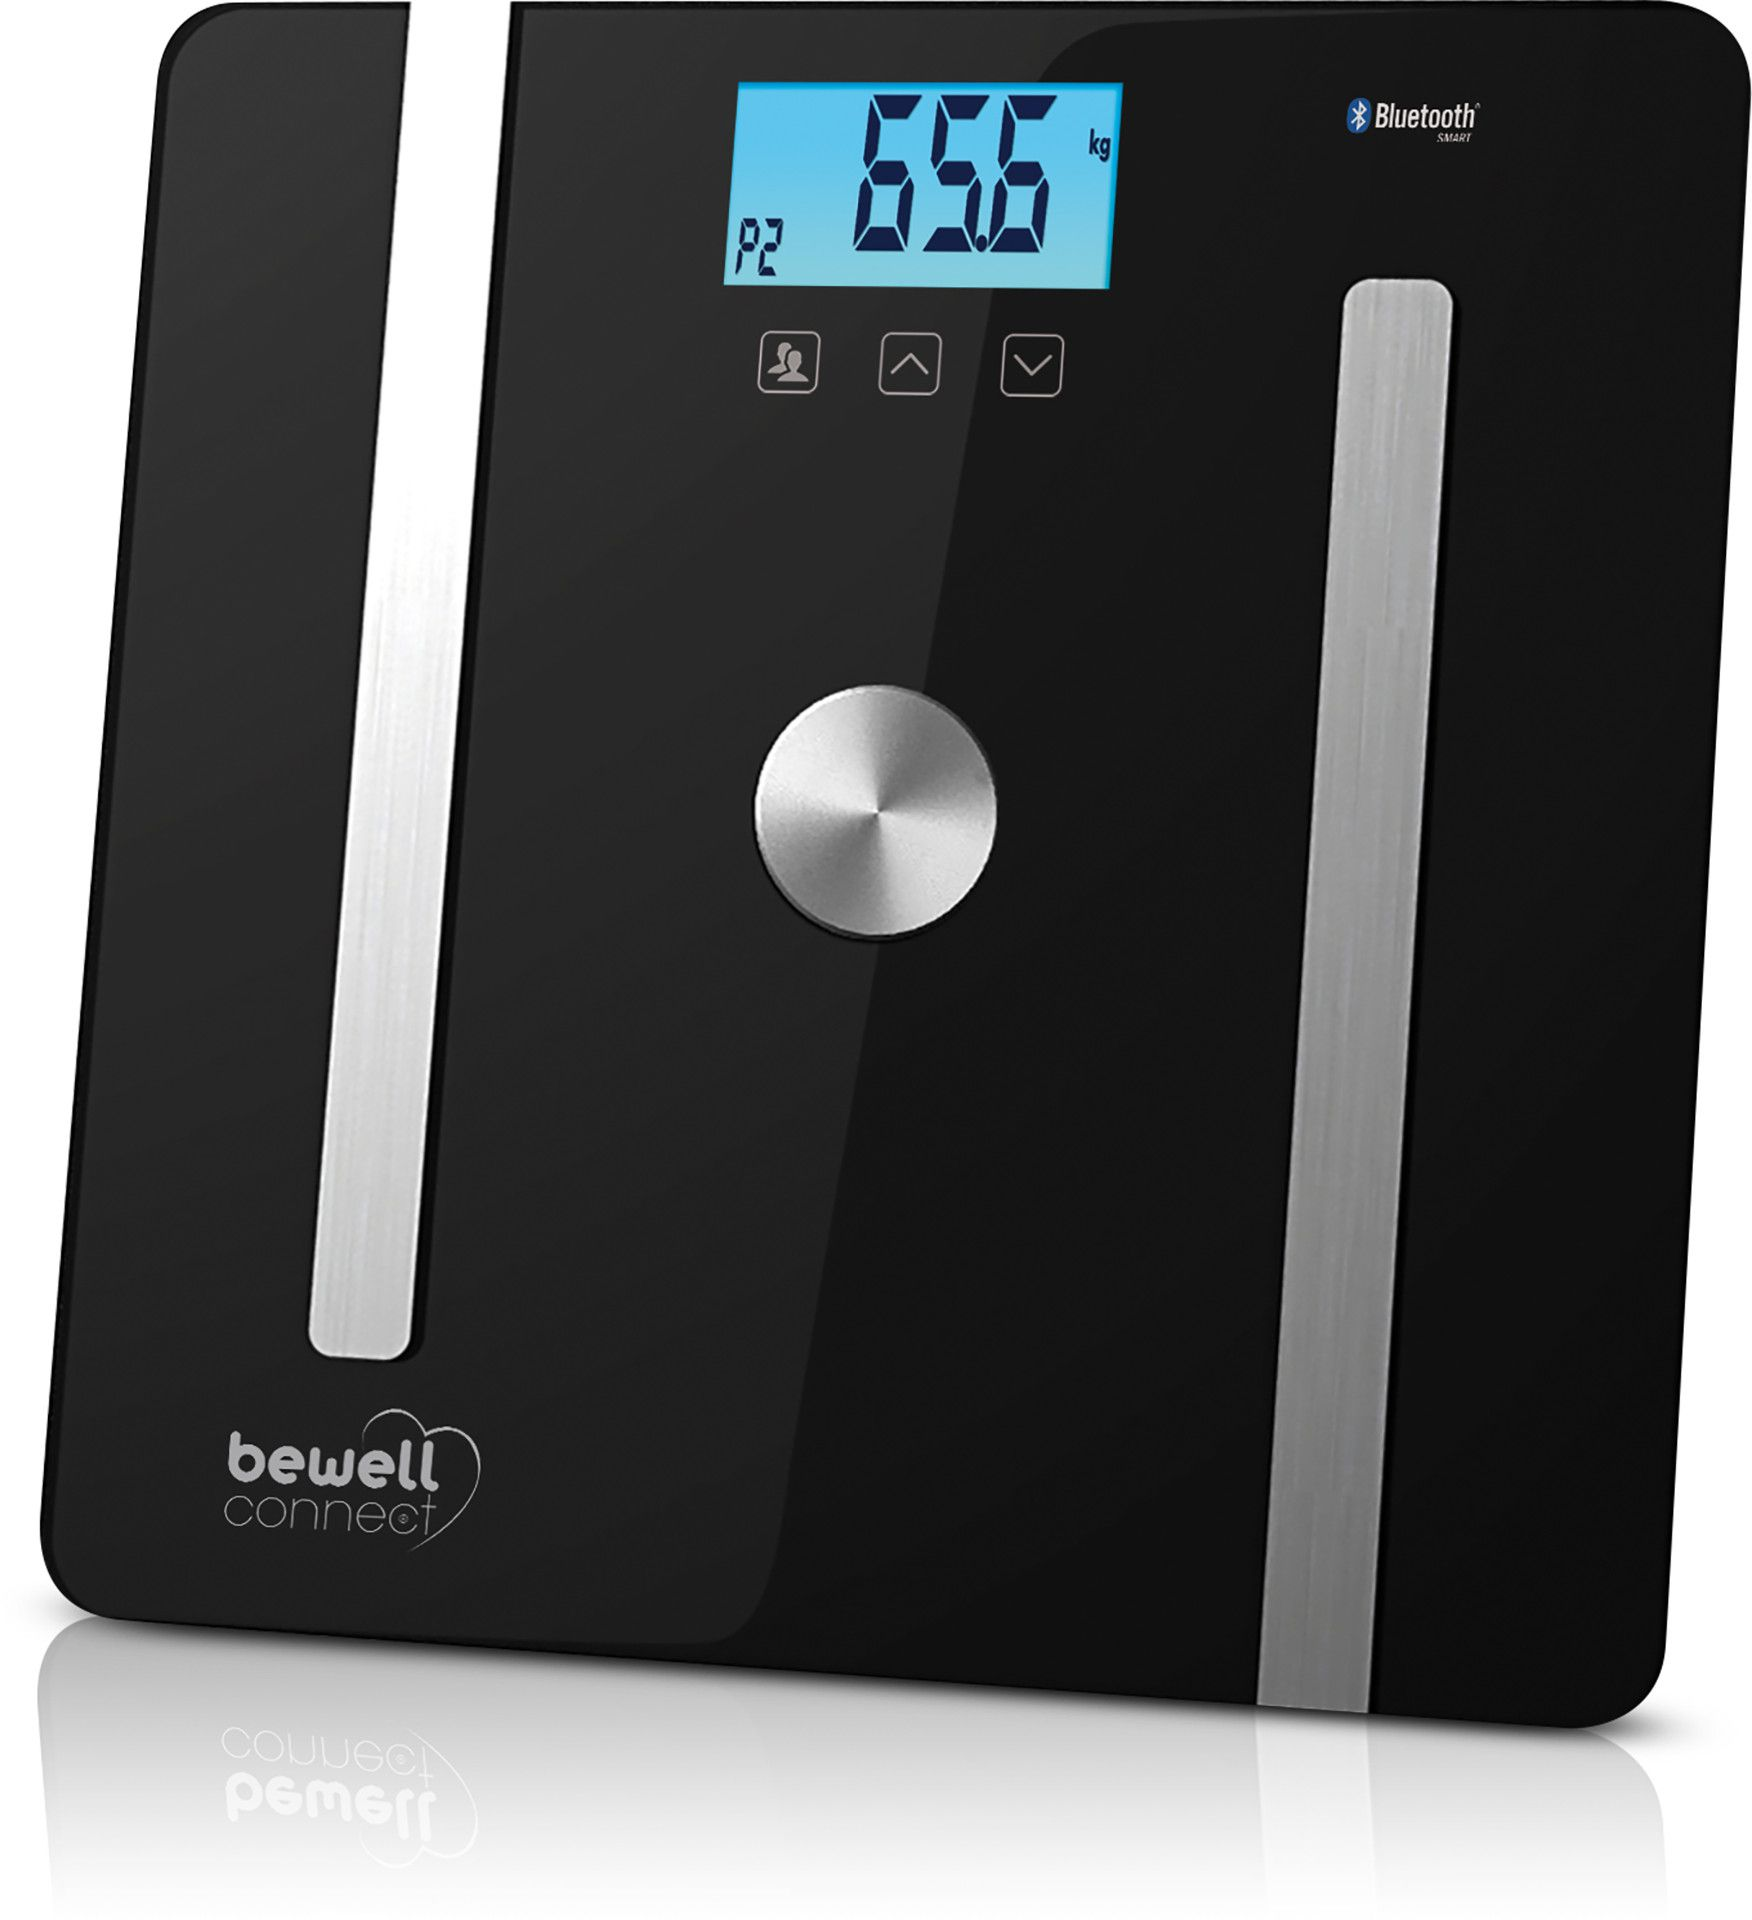 p se personne connect bewell connect myscale analyser. Black Bedroom Furniture Sets. Home Design Ideas